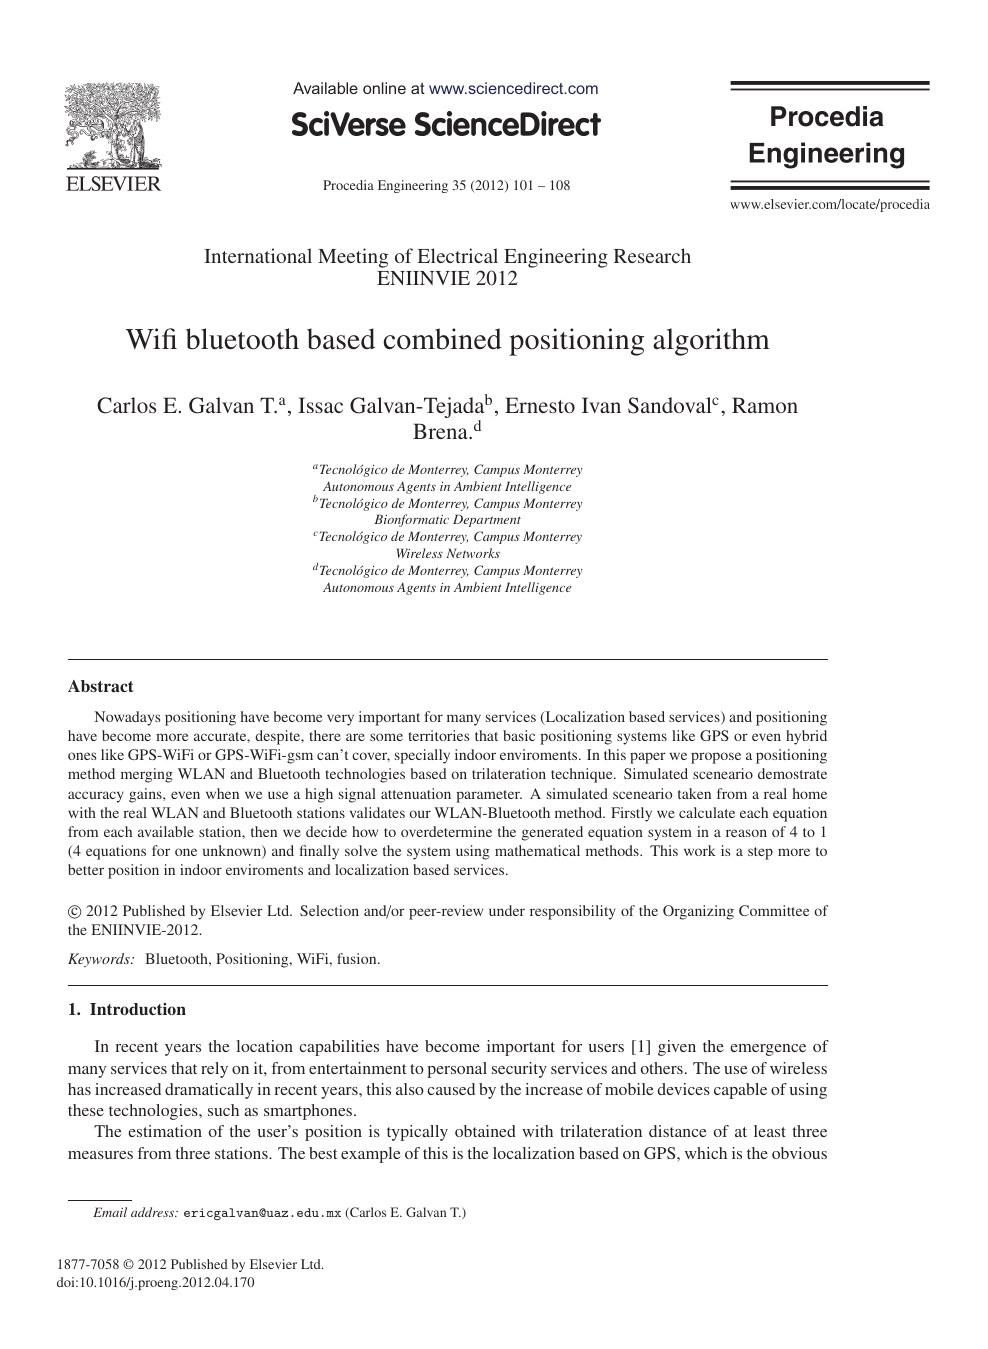 Wifi bluetooth based combined positioning algorithm – topic